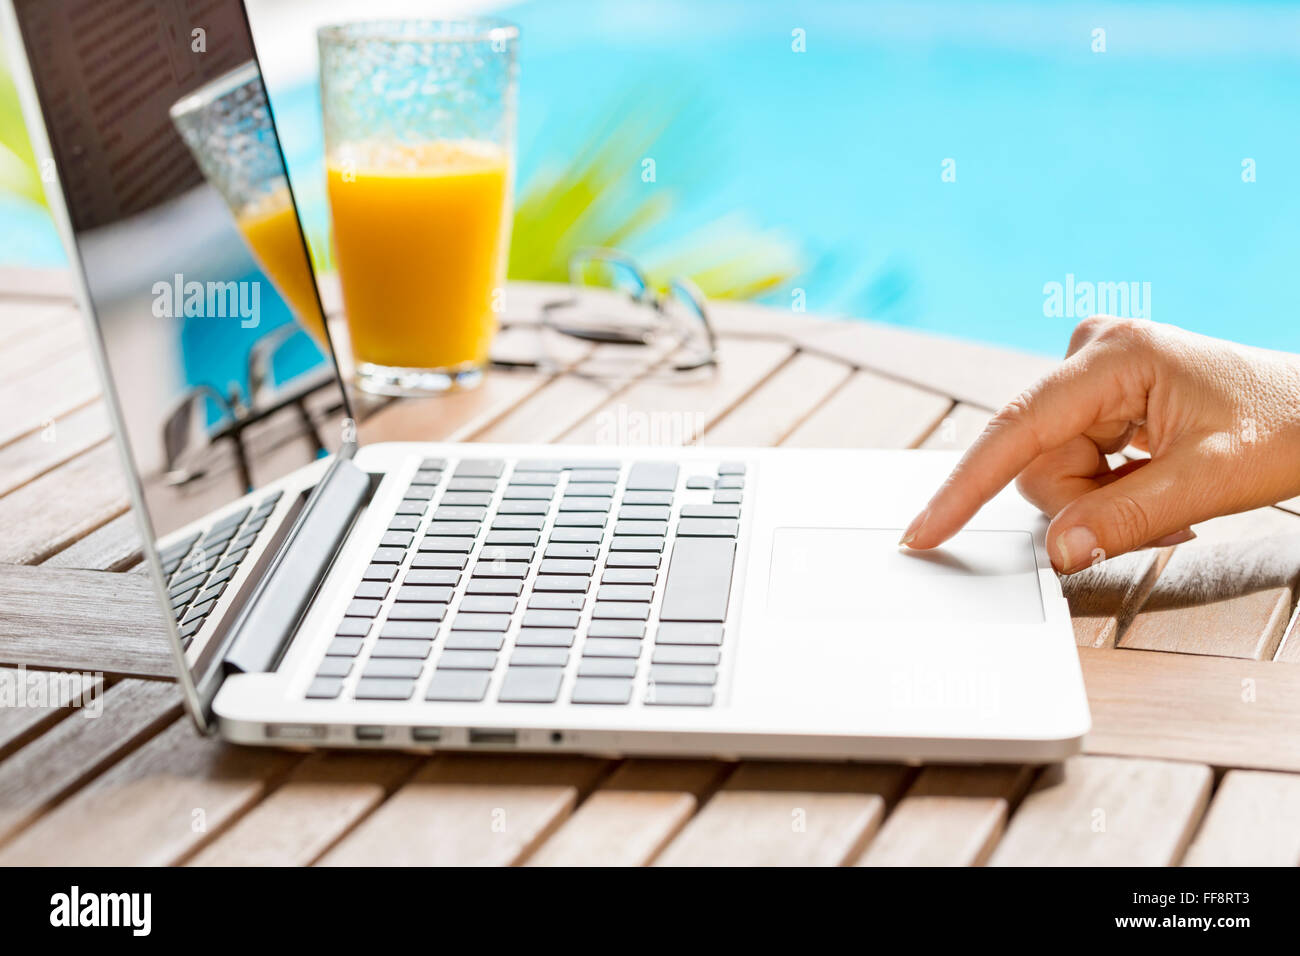 in garden a woman surfing internet on laptop blur pool background